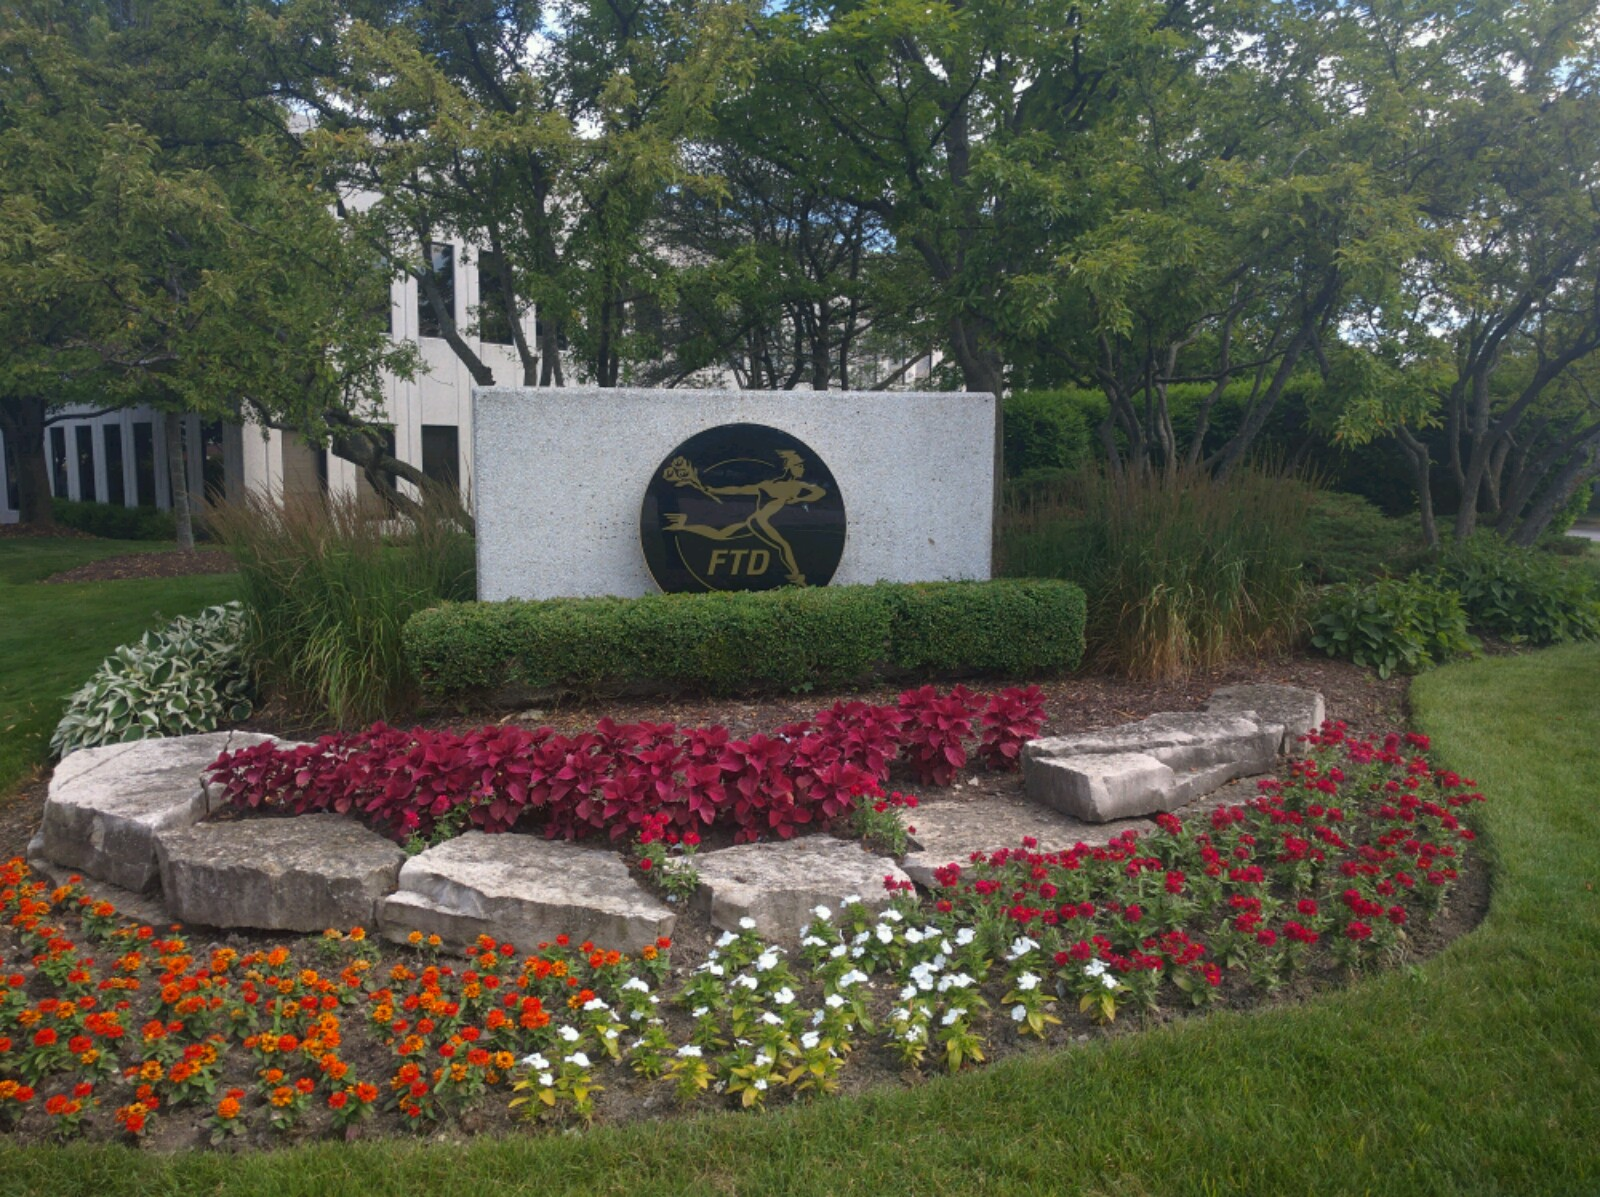 Entrance to FTD's corporate headquarters in Downers Grove, Illinois.